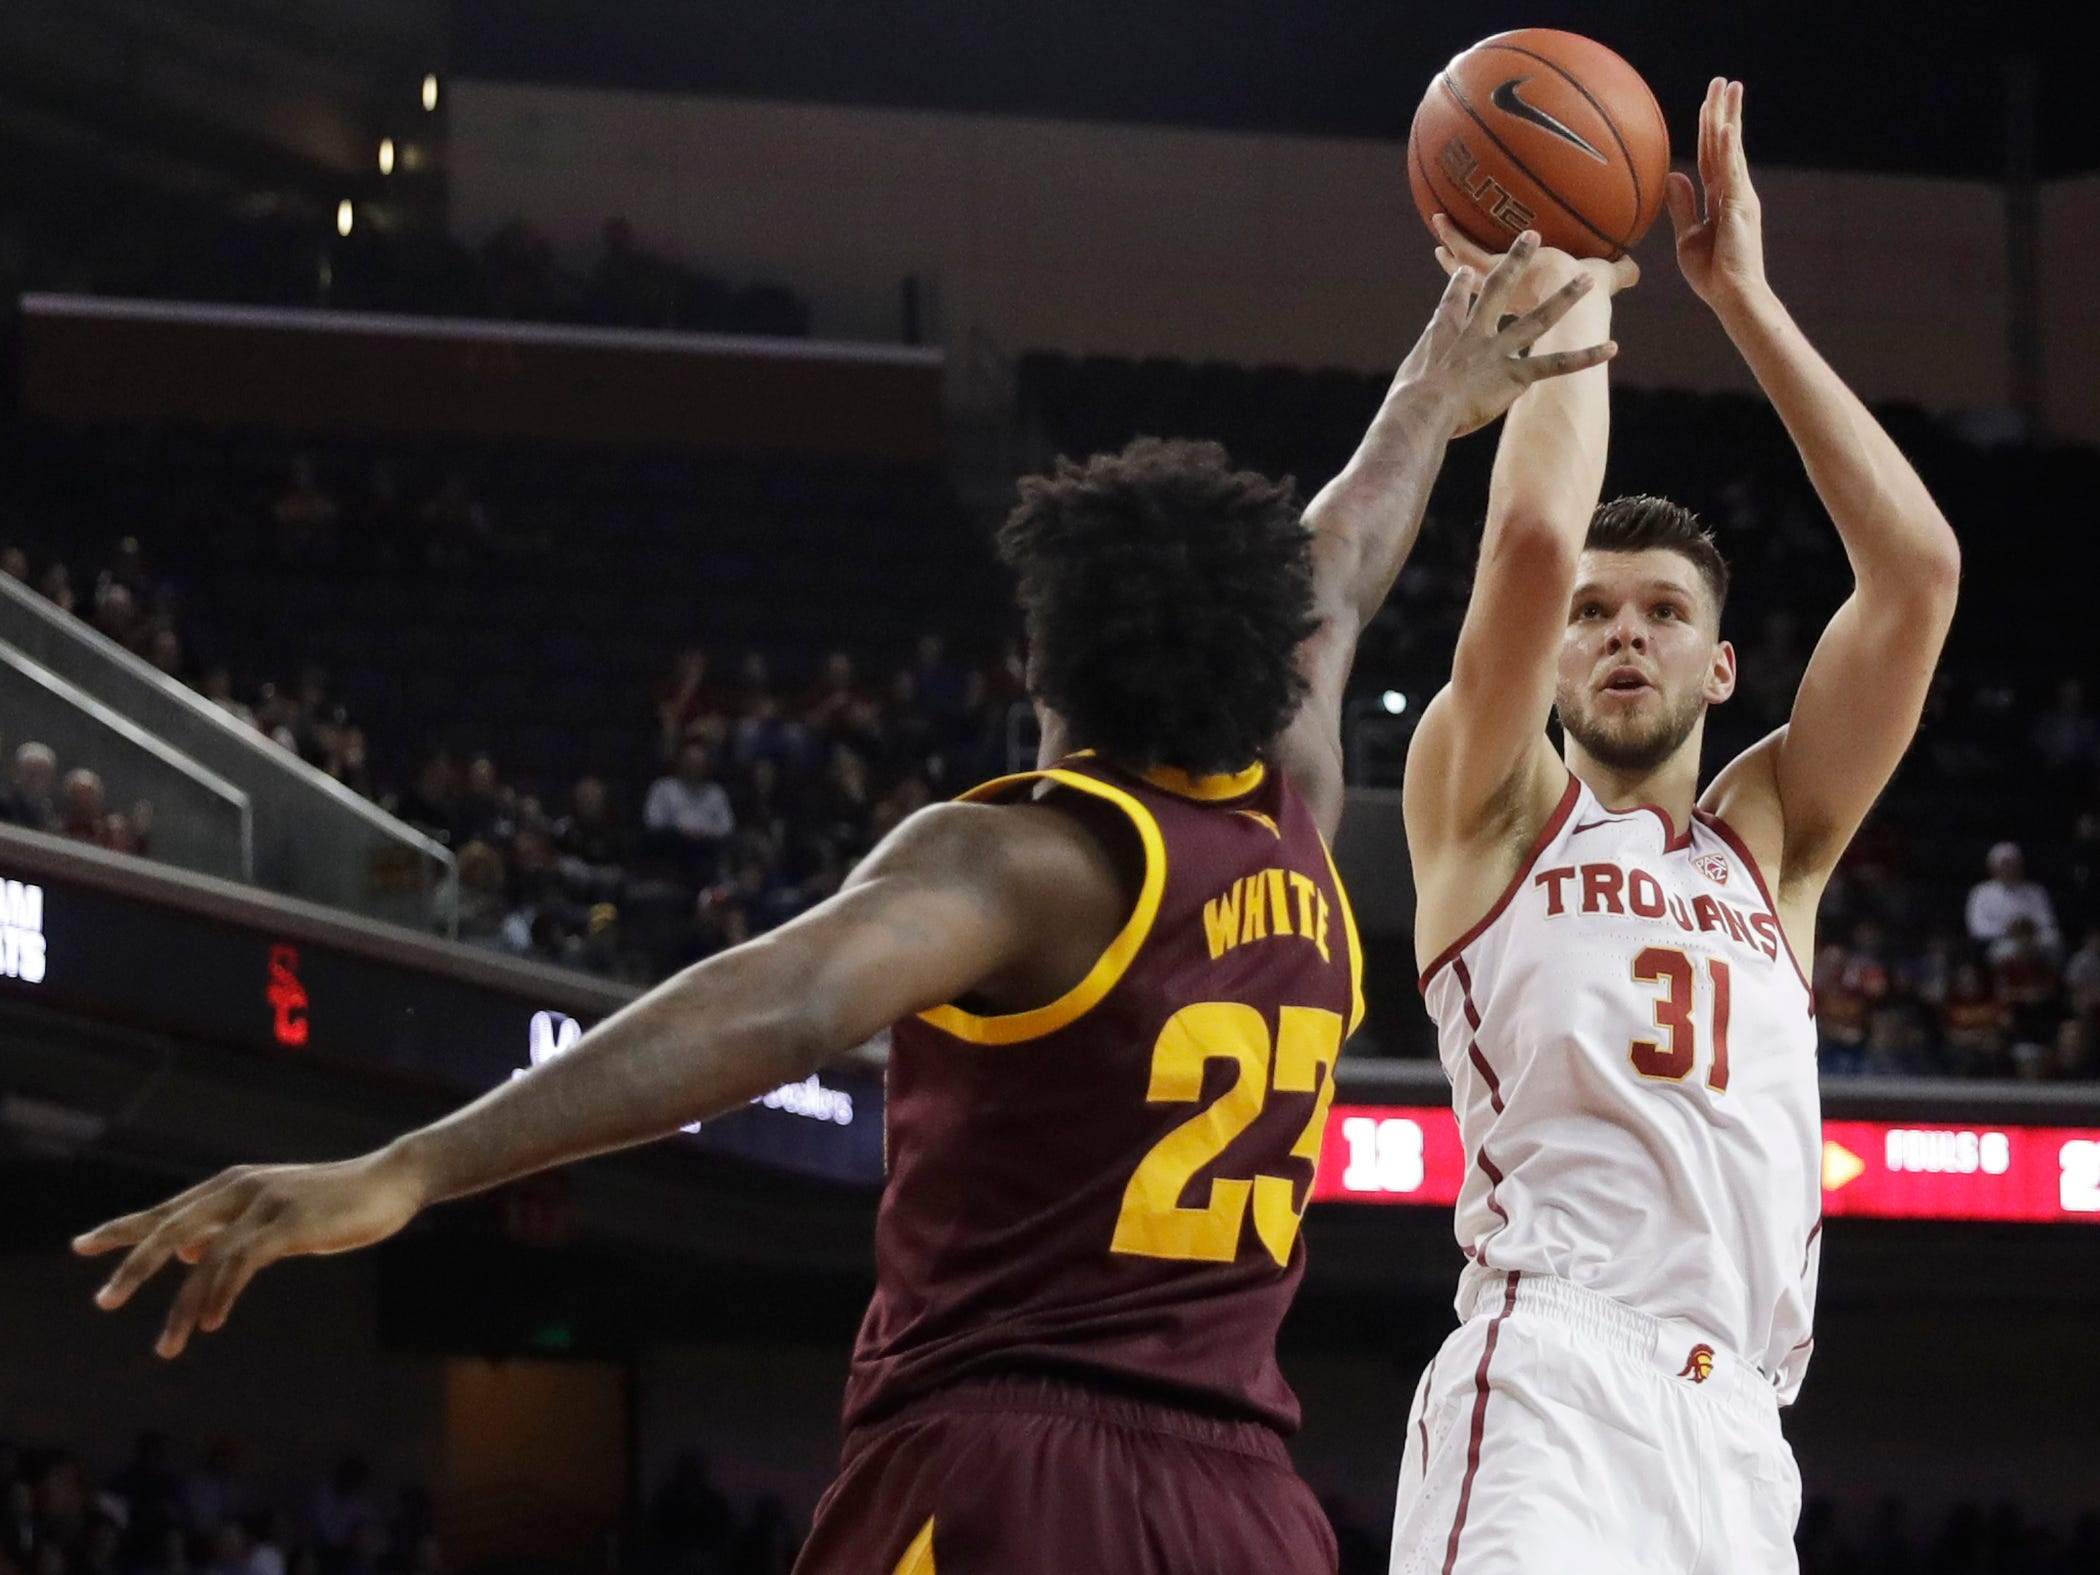 Southern California forward Nick Rakocevic (31) shoots over Arizona State forward Romello White (23) during the first half of an NCAA college basketball game Saturday, Jan. 26, 2019, in Los Angeles.